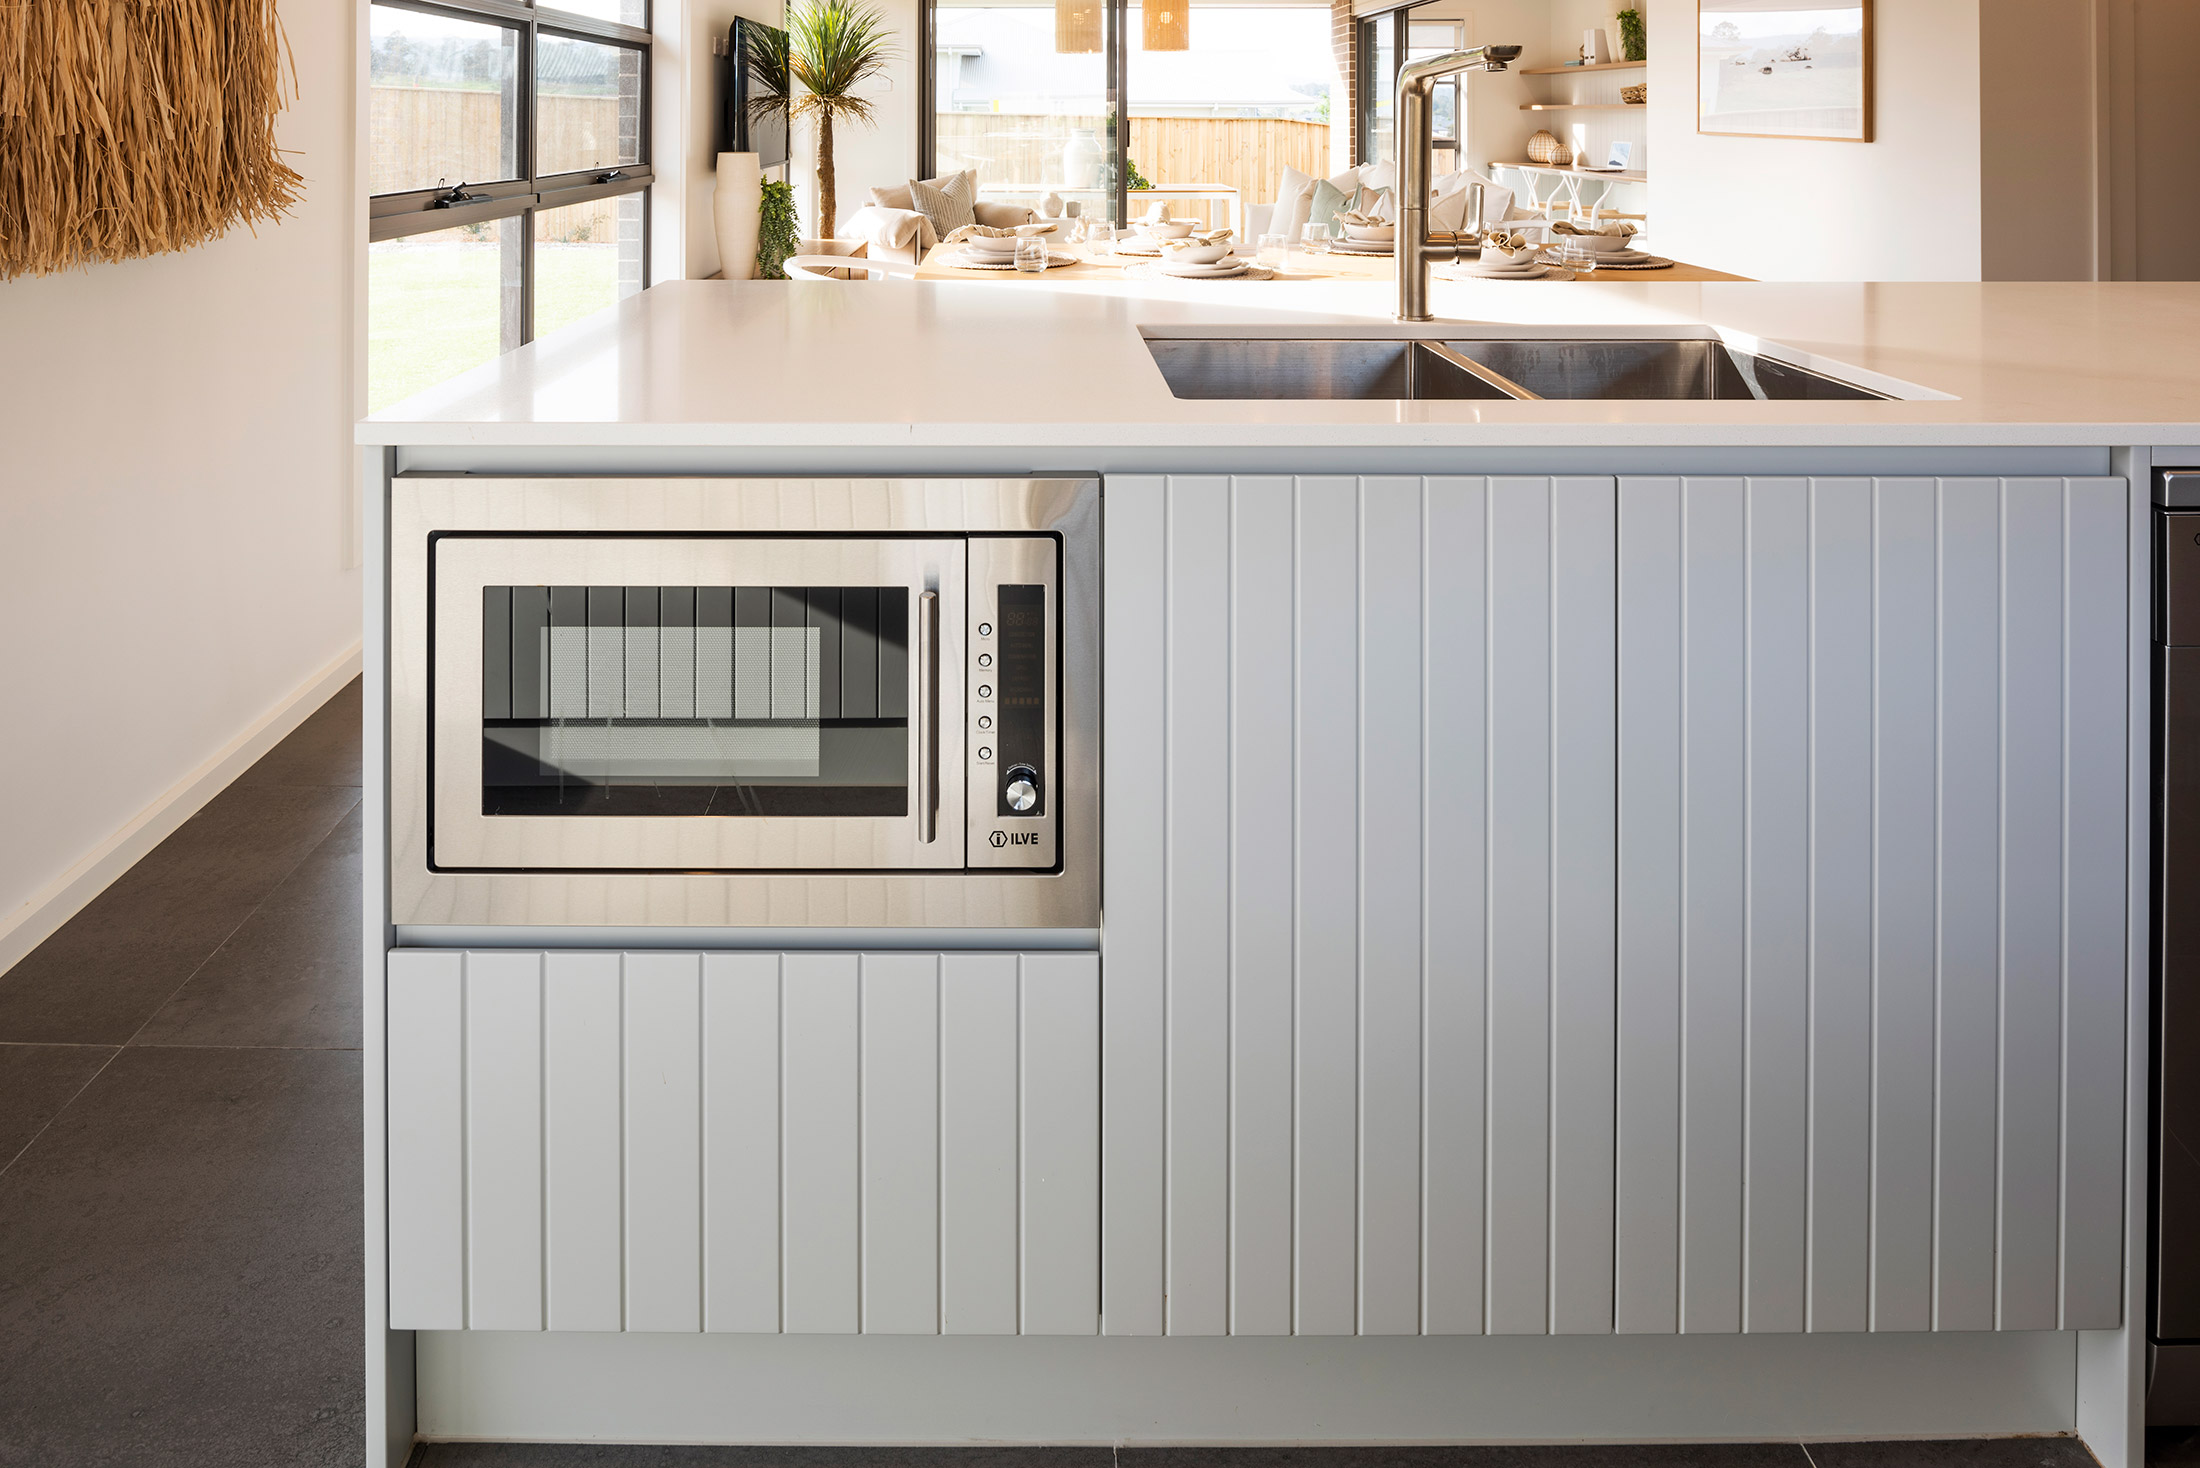 Built in microwave in white kitchen counters